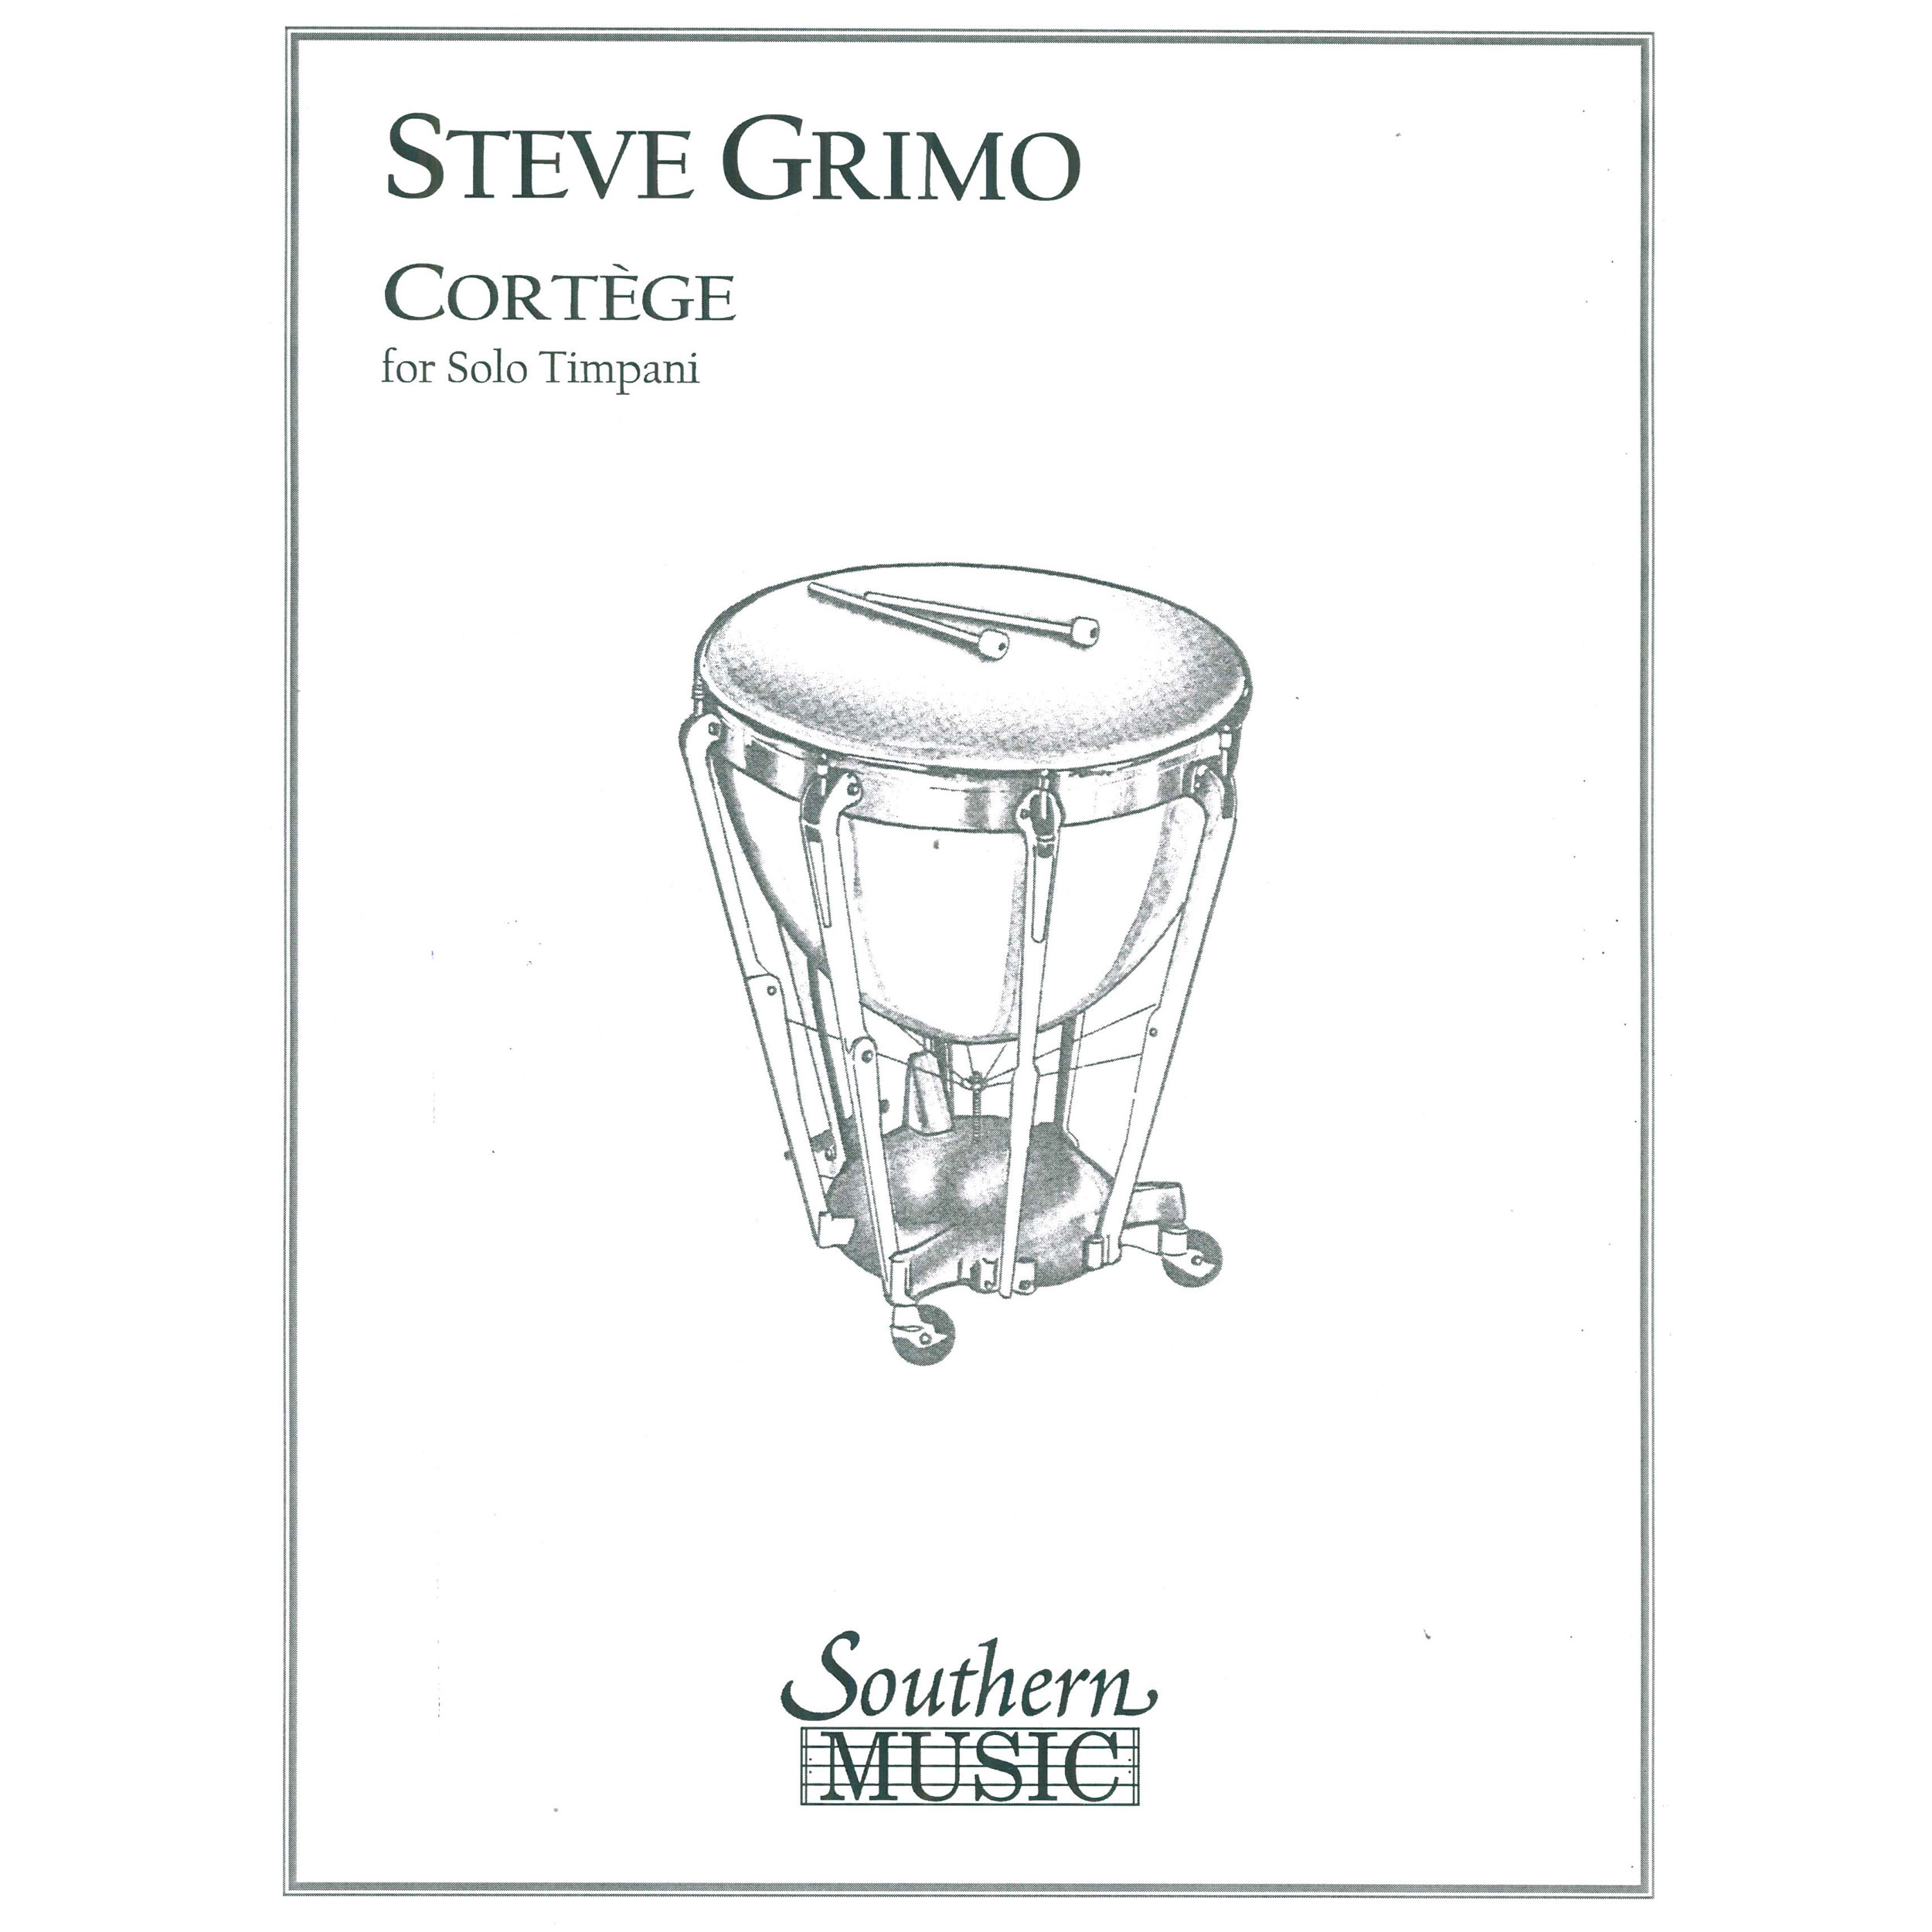 Cortege by Steve Grimo